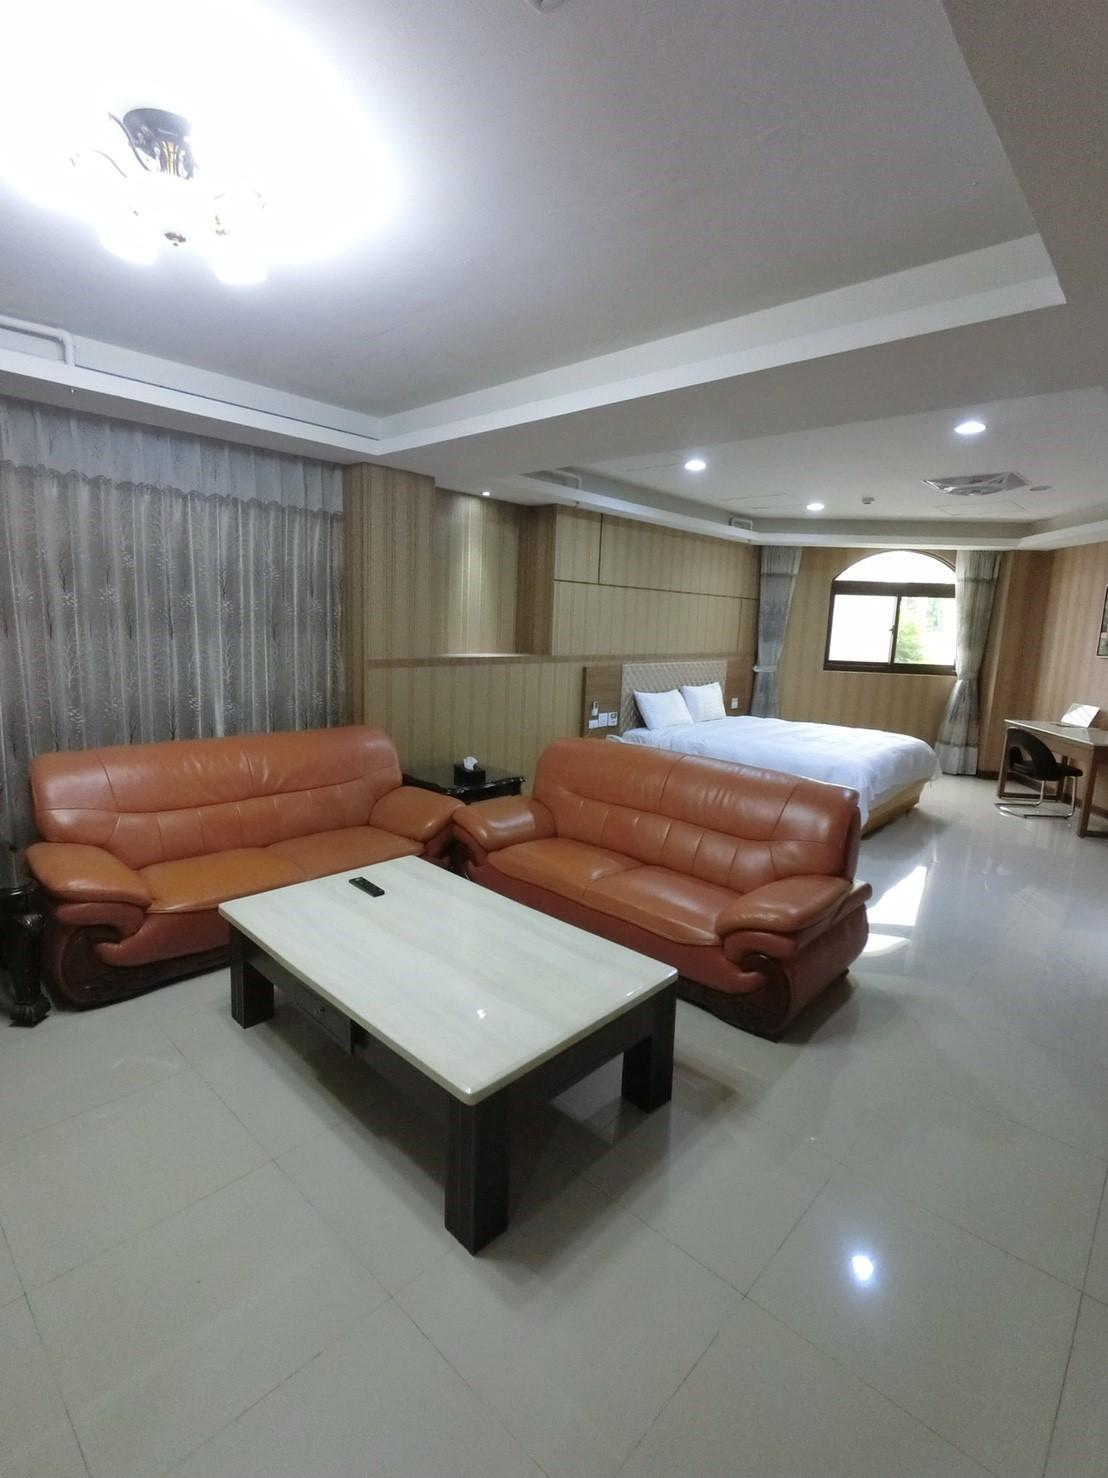 Yunlin Formosa Hotel Book Directions Navitime Transit